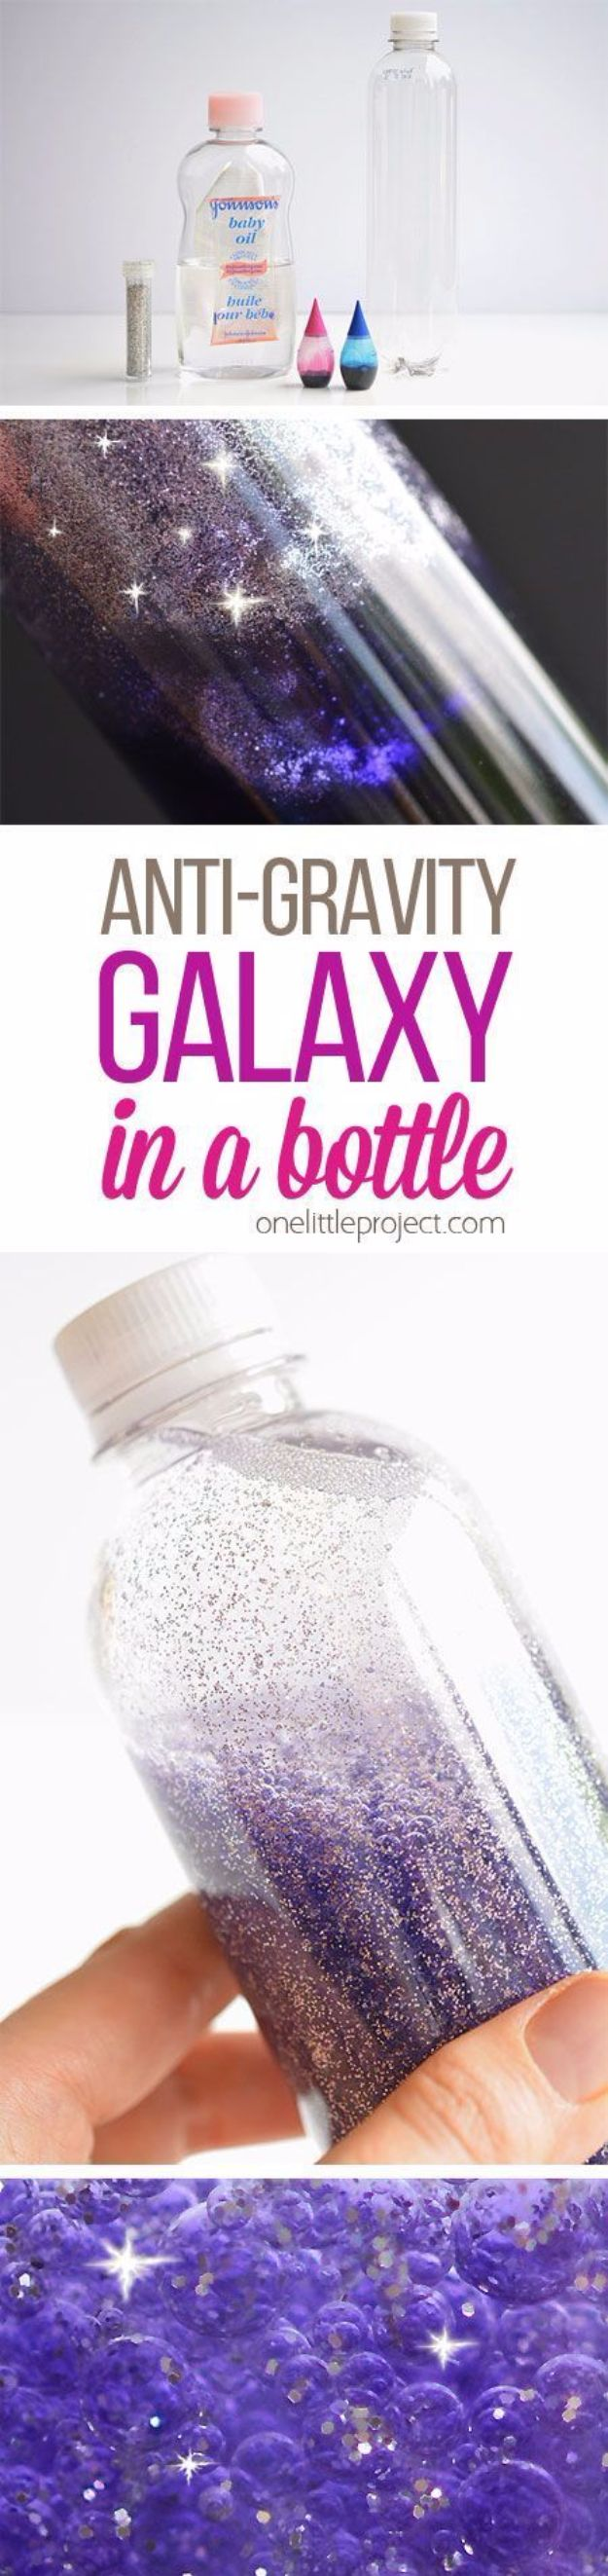 Galaxy DIY Crafts - Anti-Gravity Galaxy in a Bottle - Easy Room Decor, Cool Clothes, Fun Fabric Ideas and Painting Projects - Food, Cookies and Cupcake Recipes - Nebula Galaxy In A Jar - Art for Your Bedroom - Shirt, Backpack, Soap, Decorations for Teens, Kids and Adults